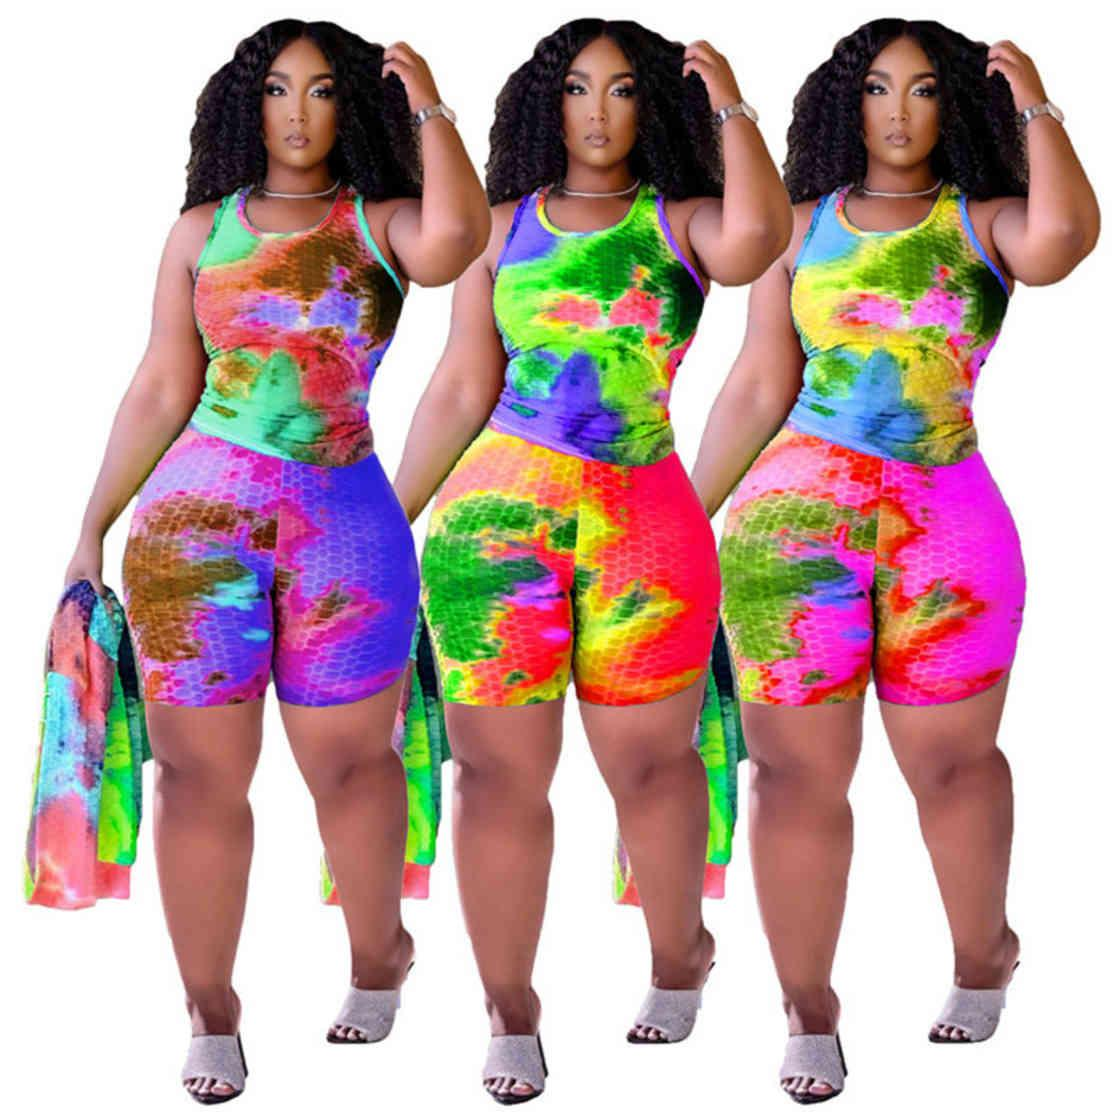 Women tie-dye vest shorts sexy Summer fashion tracksuits 2 piece sets 2XL pullover shirts capris sleeveless crew neck jogger suit clothing 9254